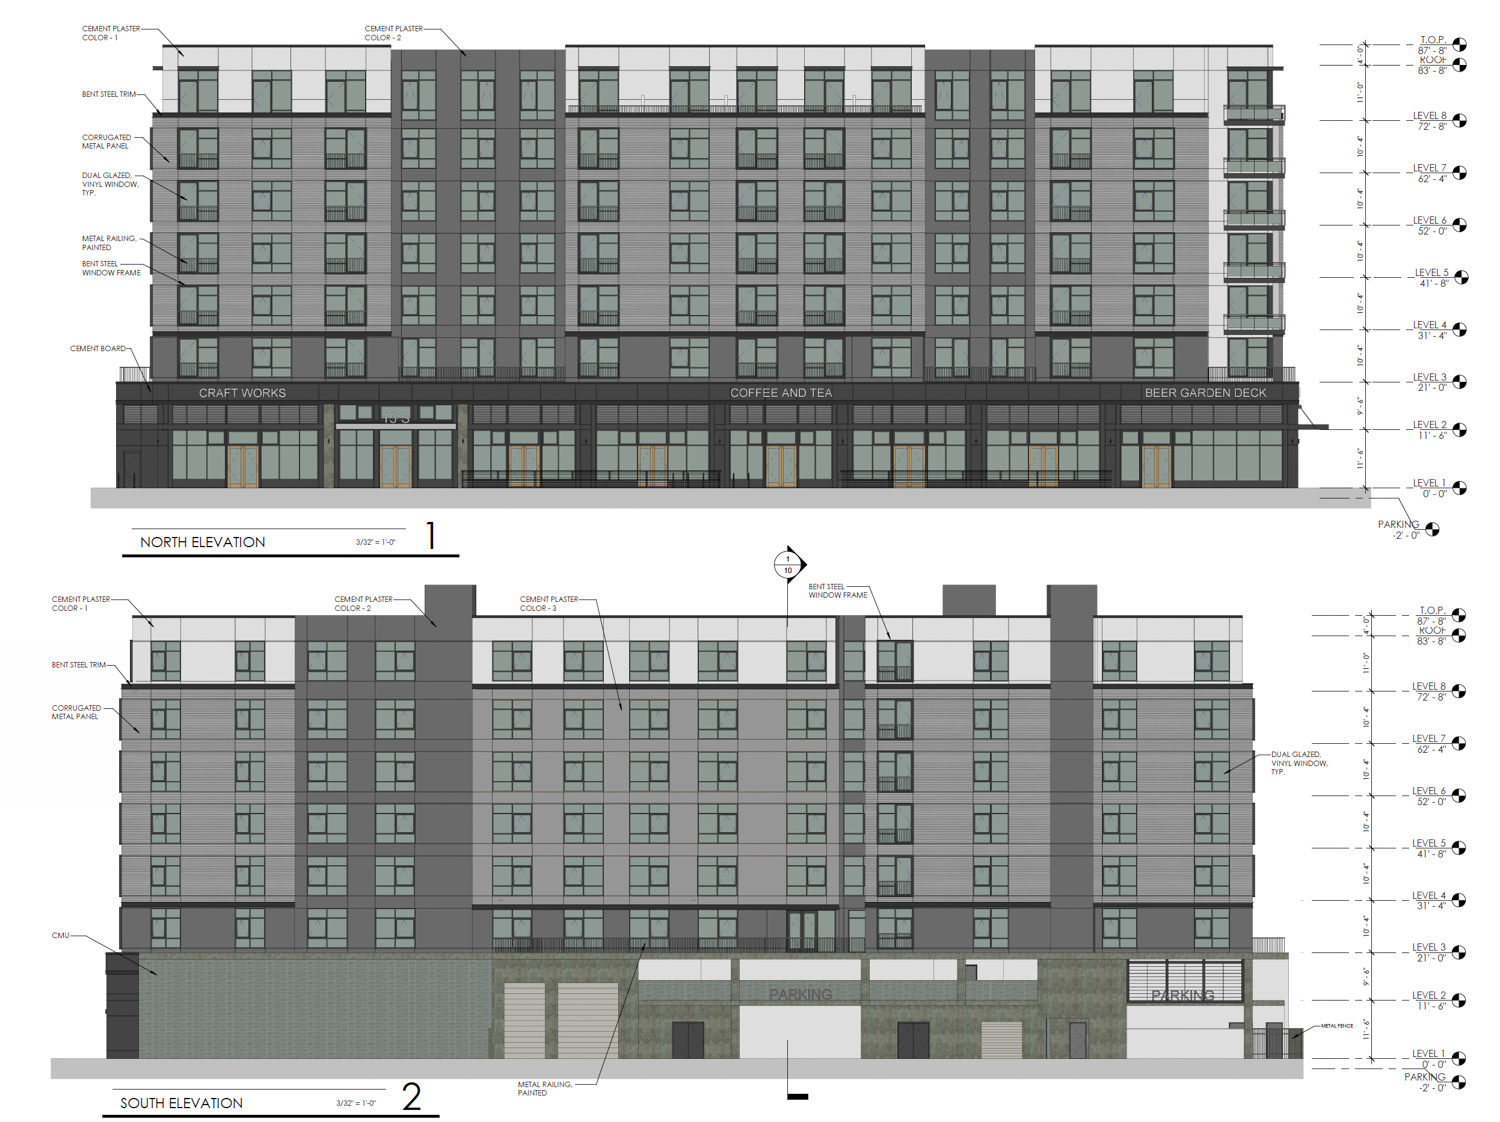 1500 S Street north and south facade elevations, design by HRGA Architecture